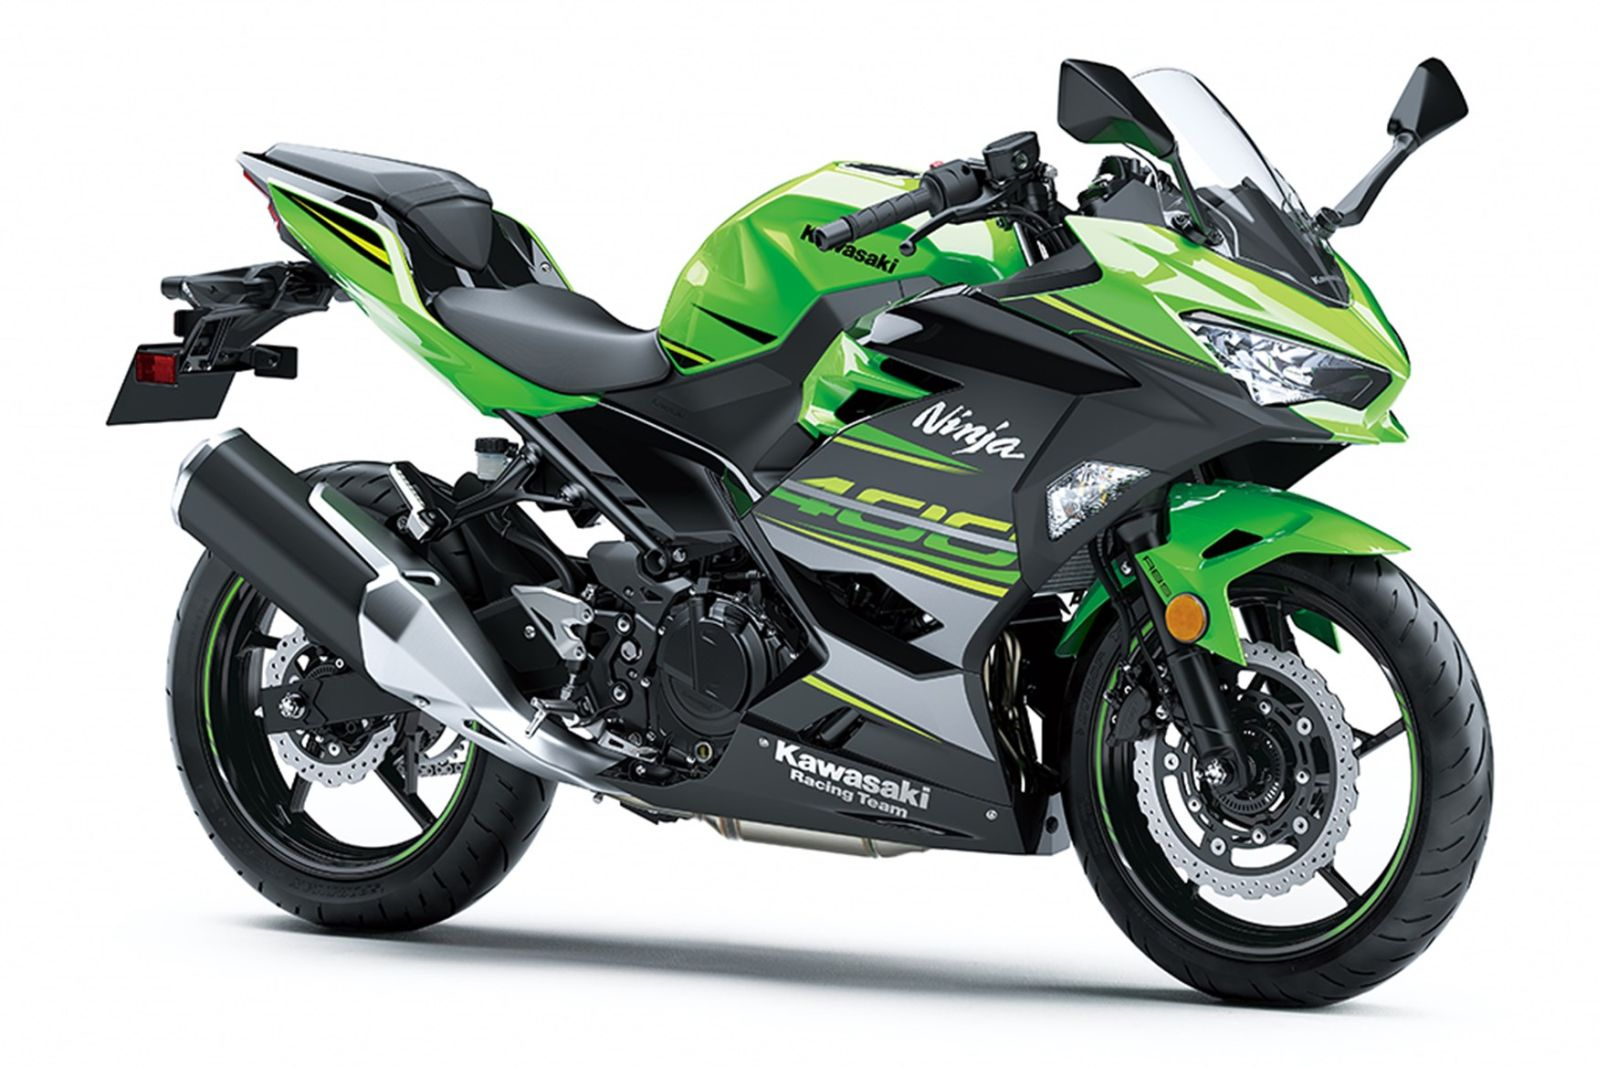 2018 kawasaki ninja 400 images features tech specs and all you need to know motoroids. Black Bedroom Furniture Sets. Home Design Ideas